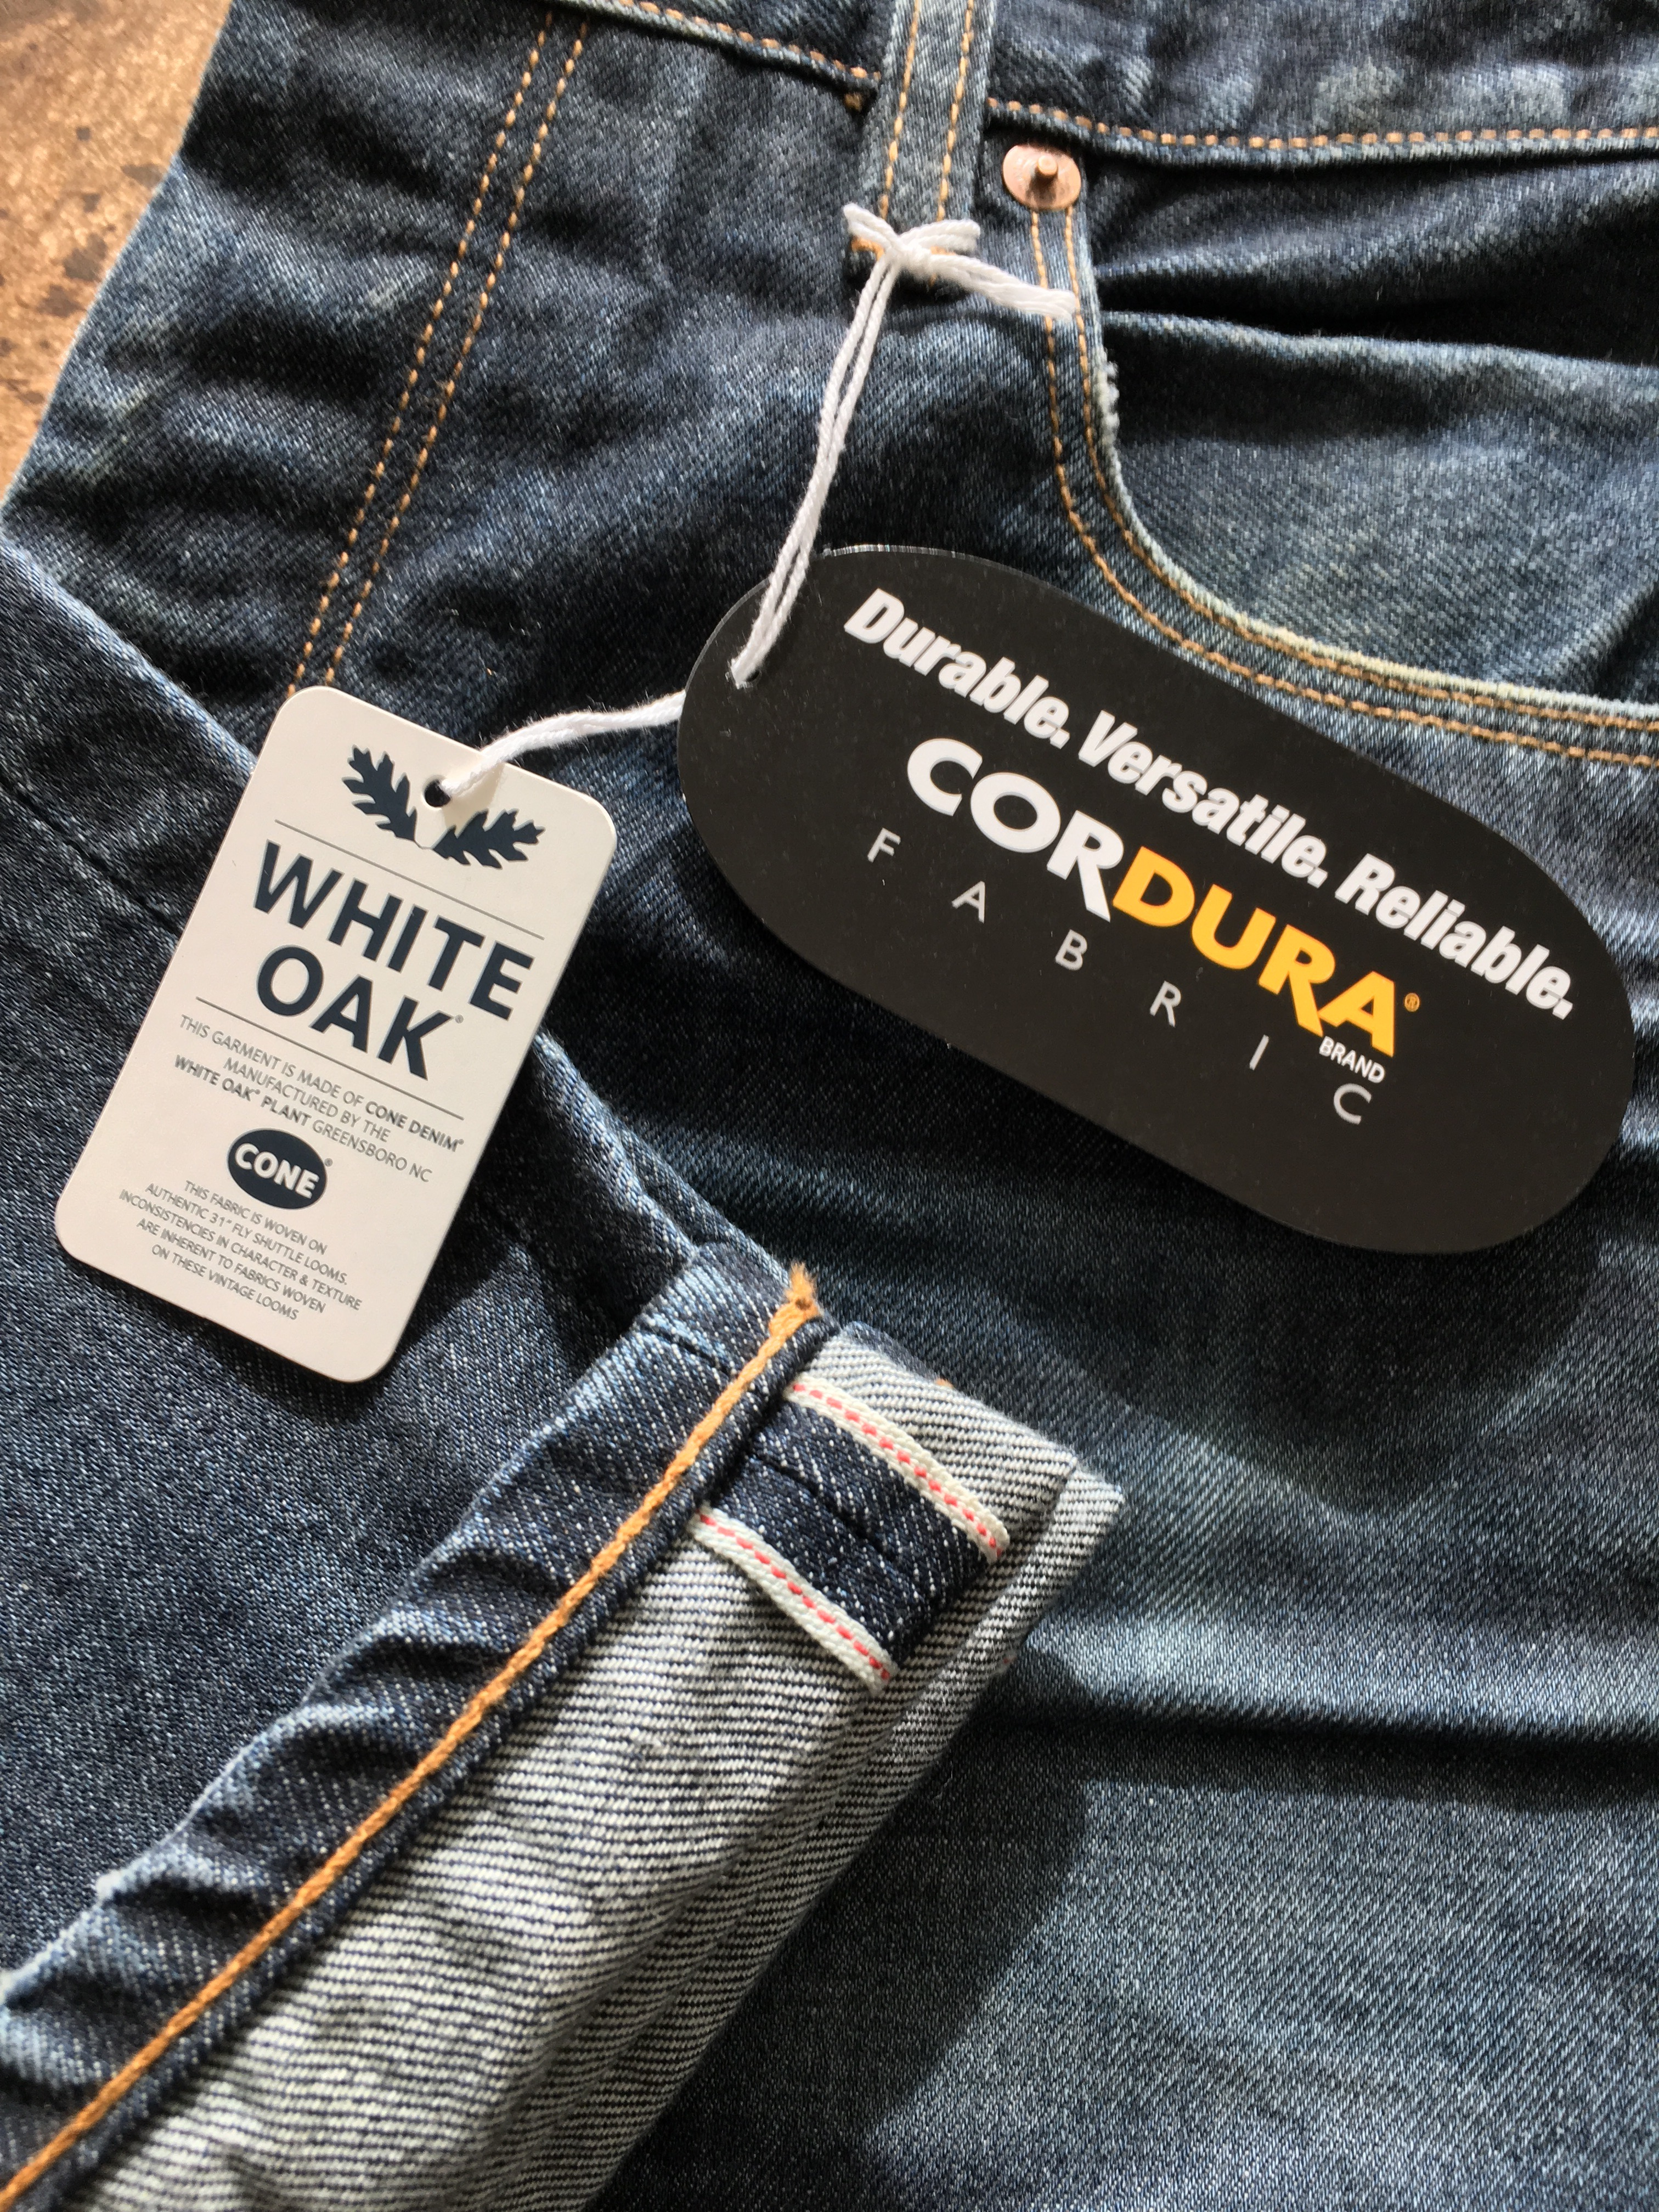 Cordura and Cone Denim launch first Cordura Selvage Denim